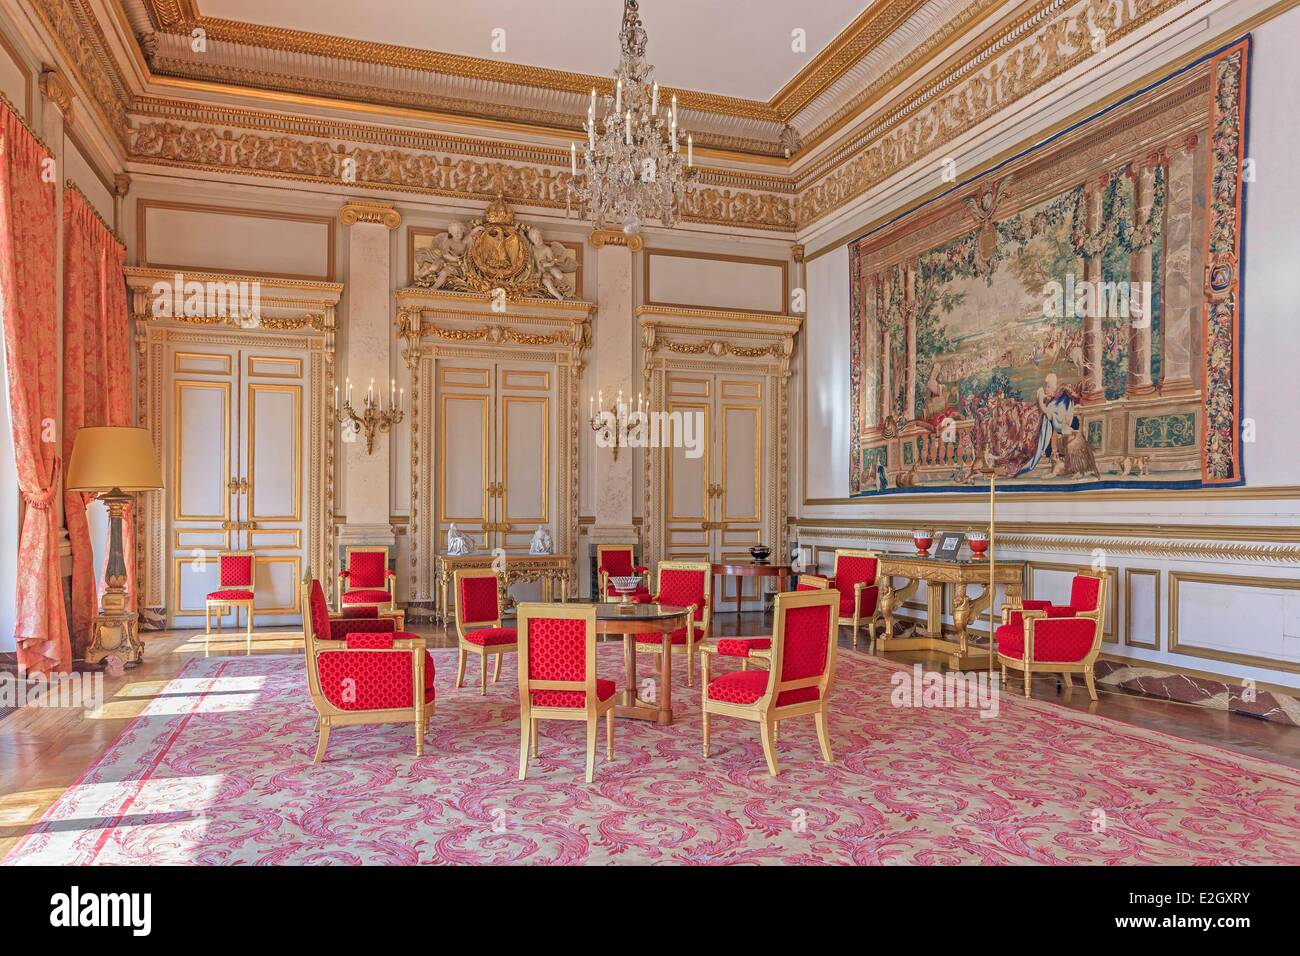 France paris palais royal constitutional council grand salon great stock photo royalty free - Salon france amerique paris 8 ...